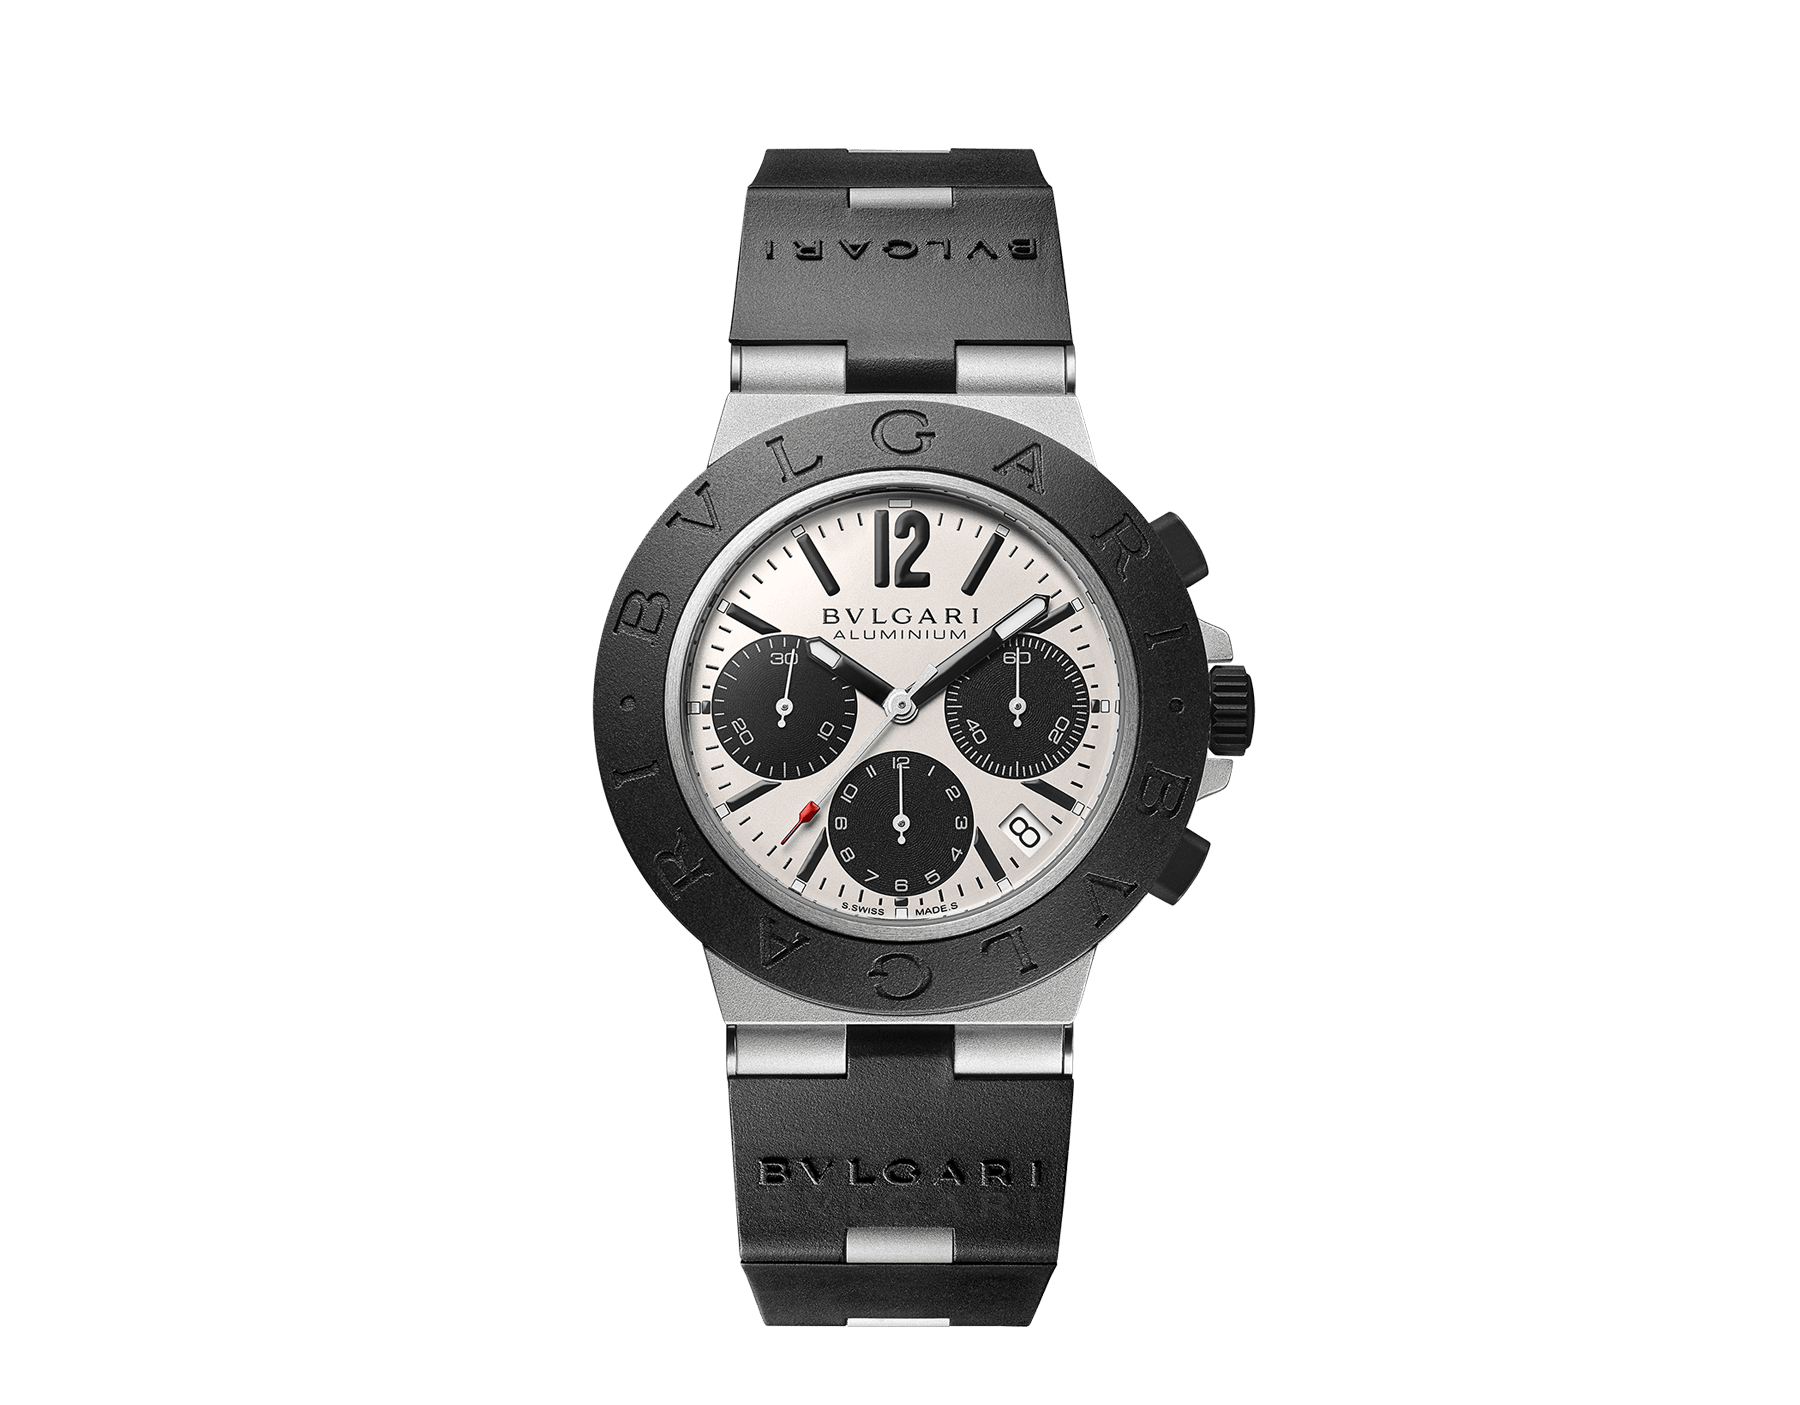 Bvlgari Aluminium watch with mechanical manufacture movement, automatic winding, chronograph, 40 mm aluminium and titanium case, black rubber bezel with BVLGARI BVLGARI engraving, grey dial and black rubber bracelet. Water resistant up to 100 metres 103383 image 1